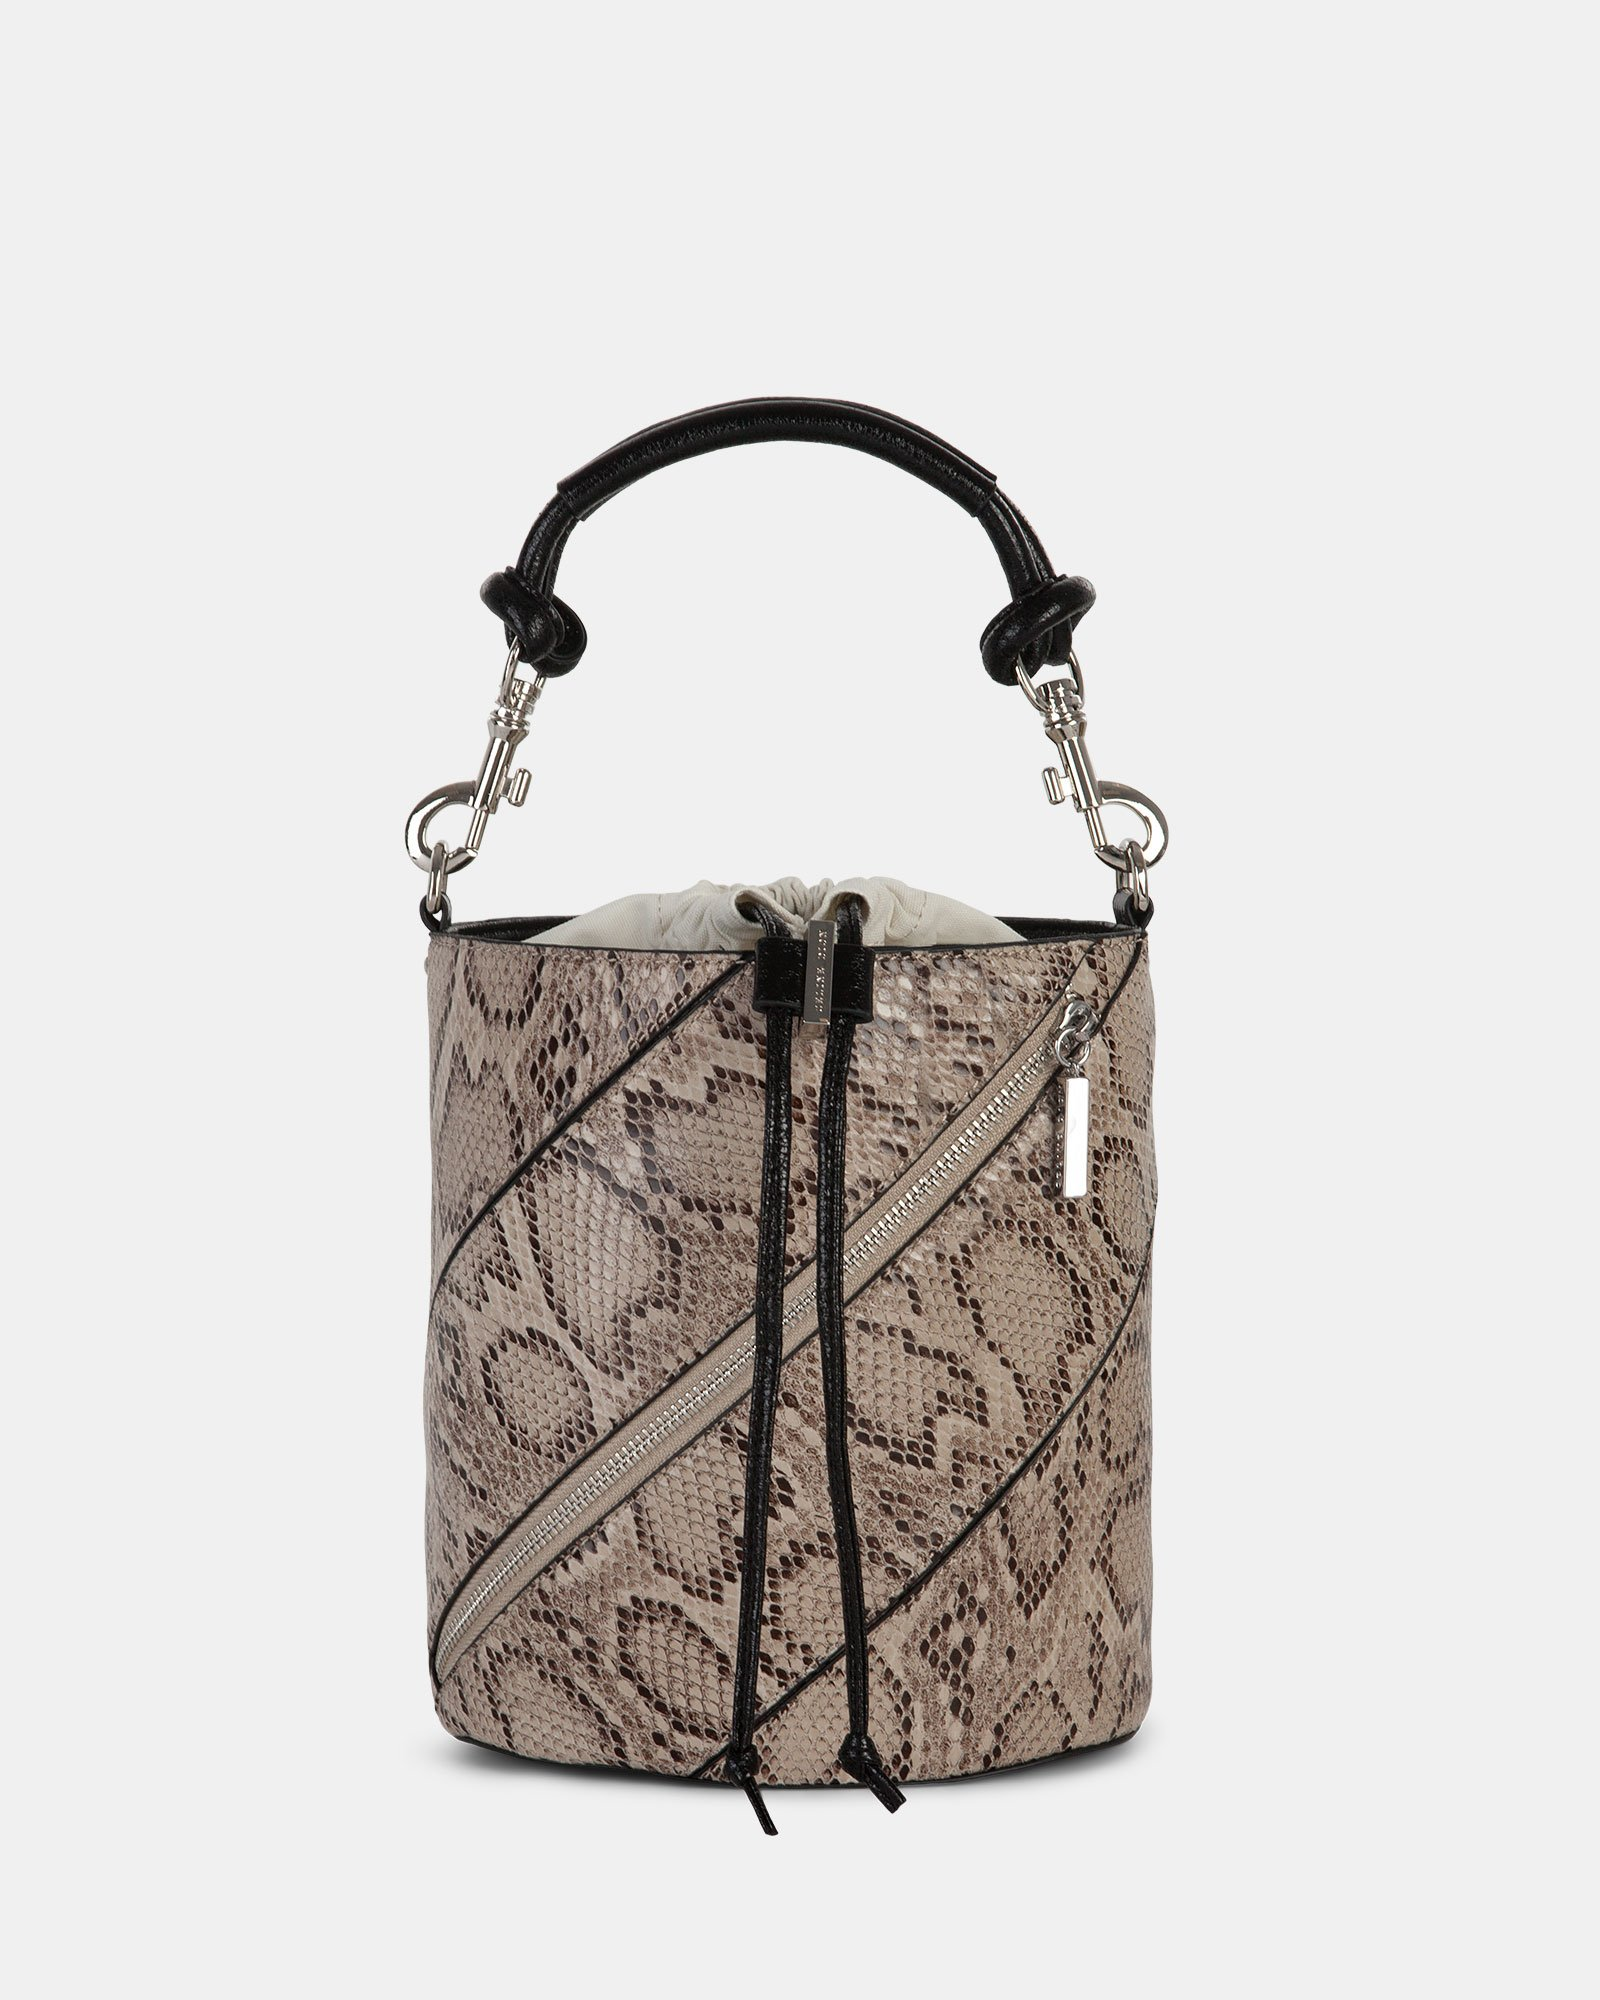 Vivo - Hobo bag Leather-like & Canvas with Adjustable and detachable crossbody strap - Natural - Céline Dion - Zoom